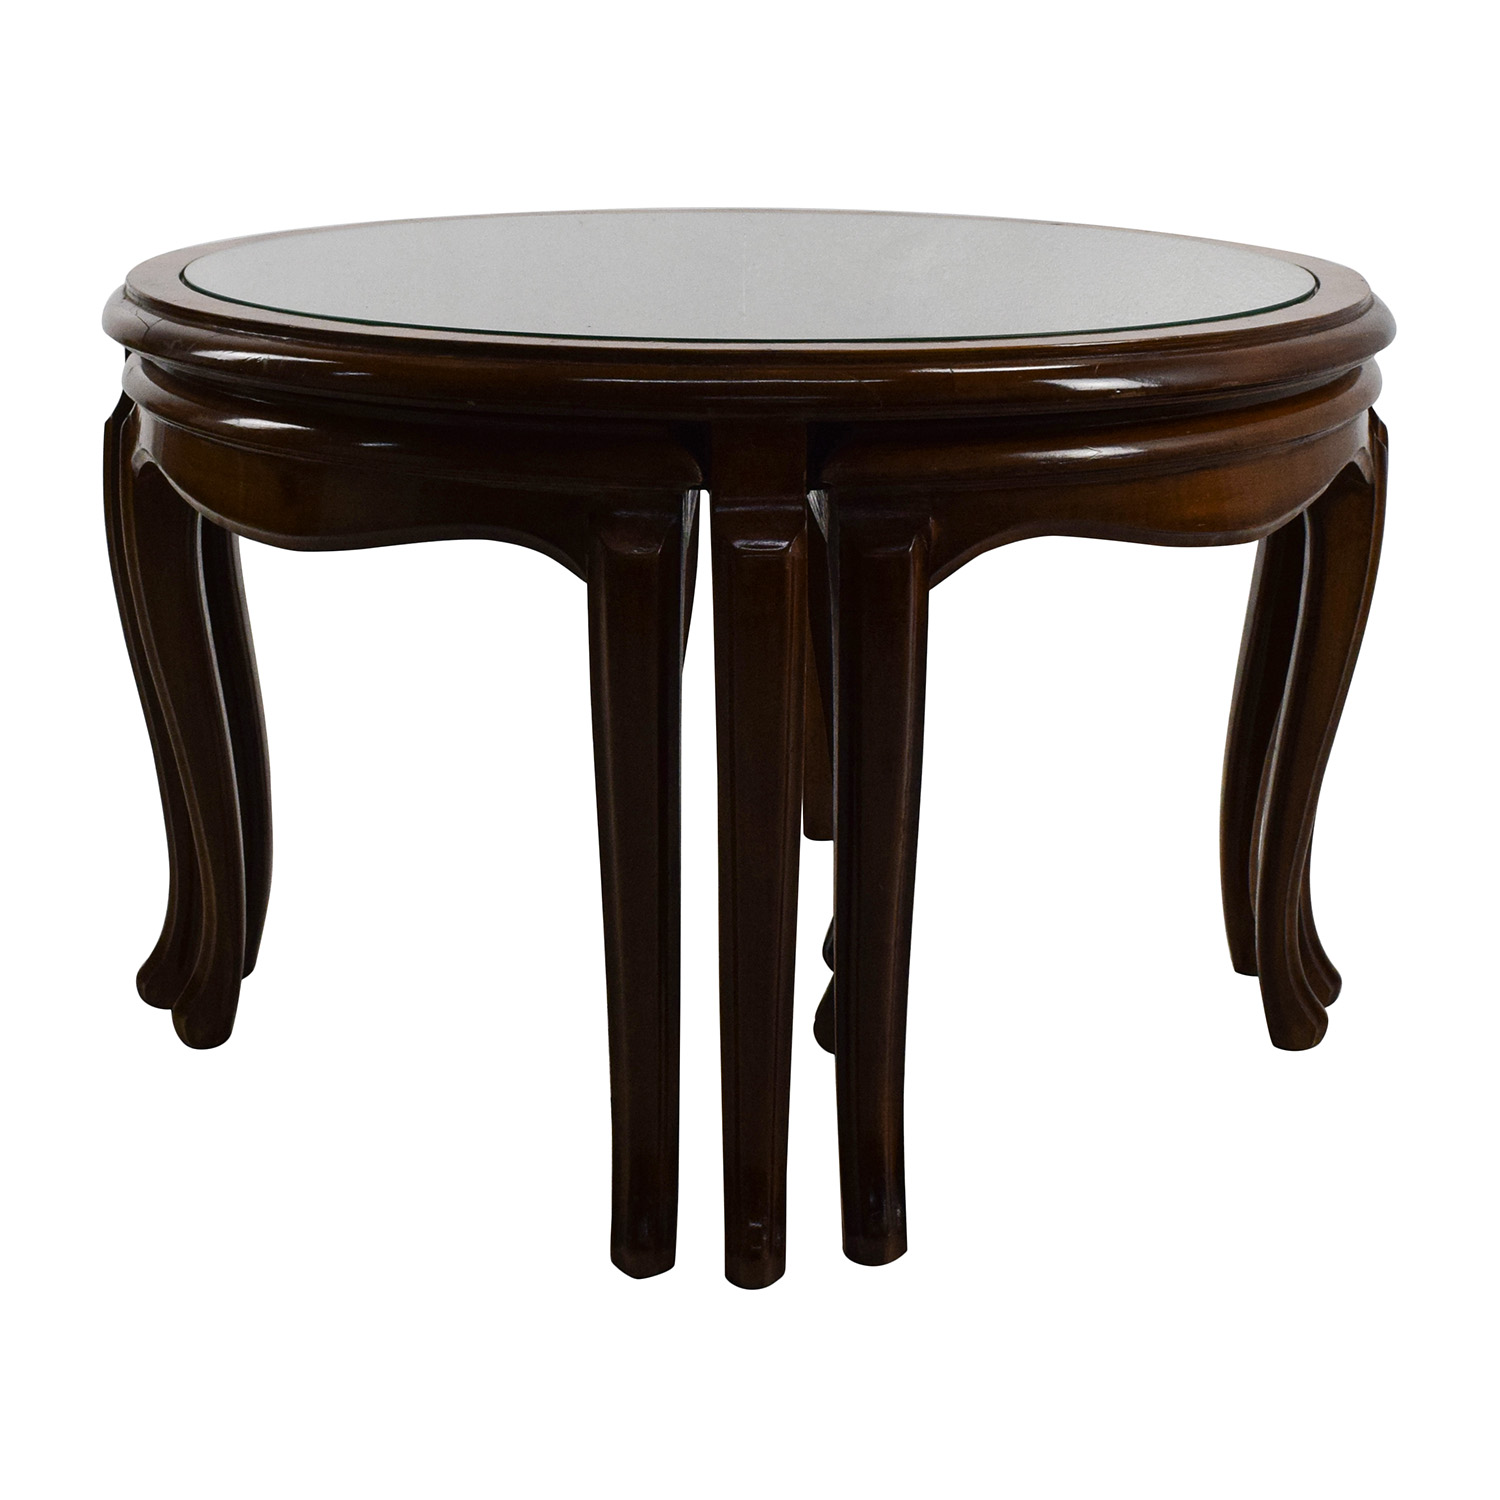 OFF Round Glass Top Coffee Table with 4 Nesting Stools Tables